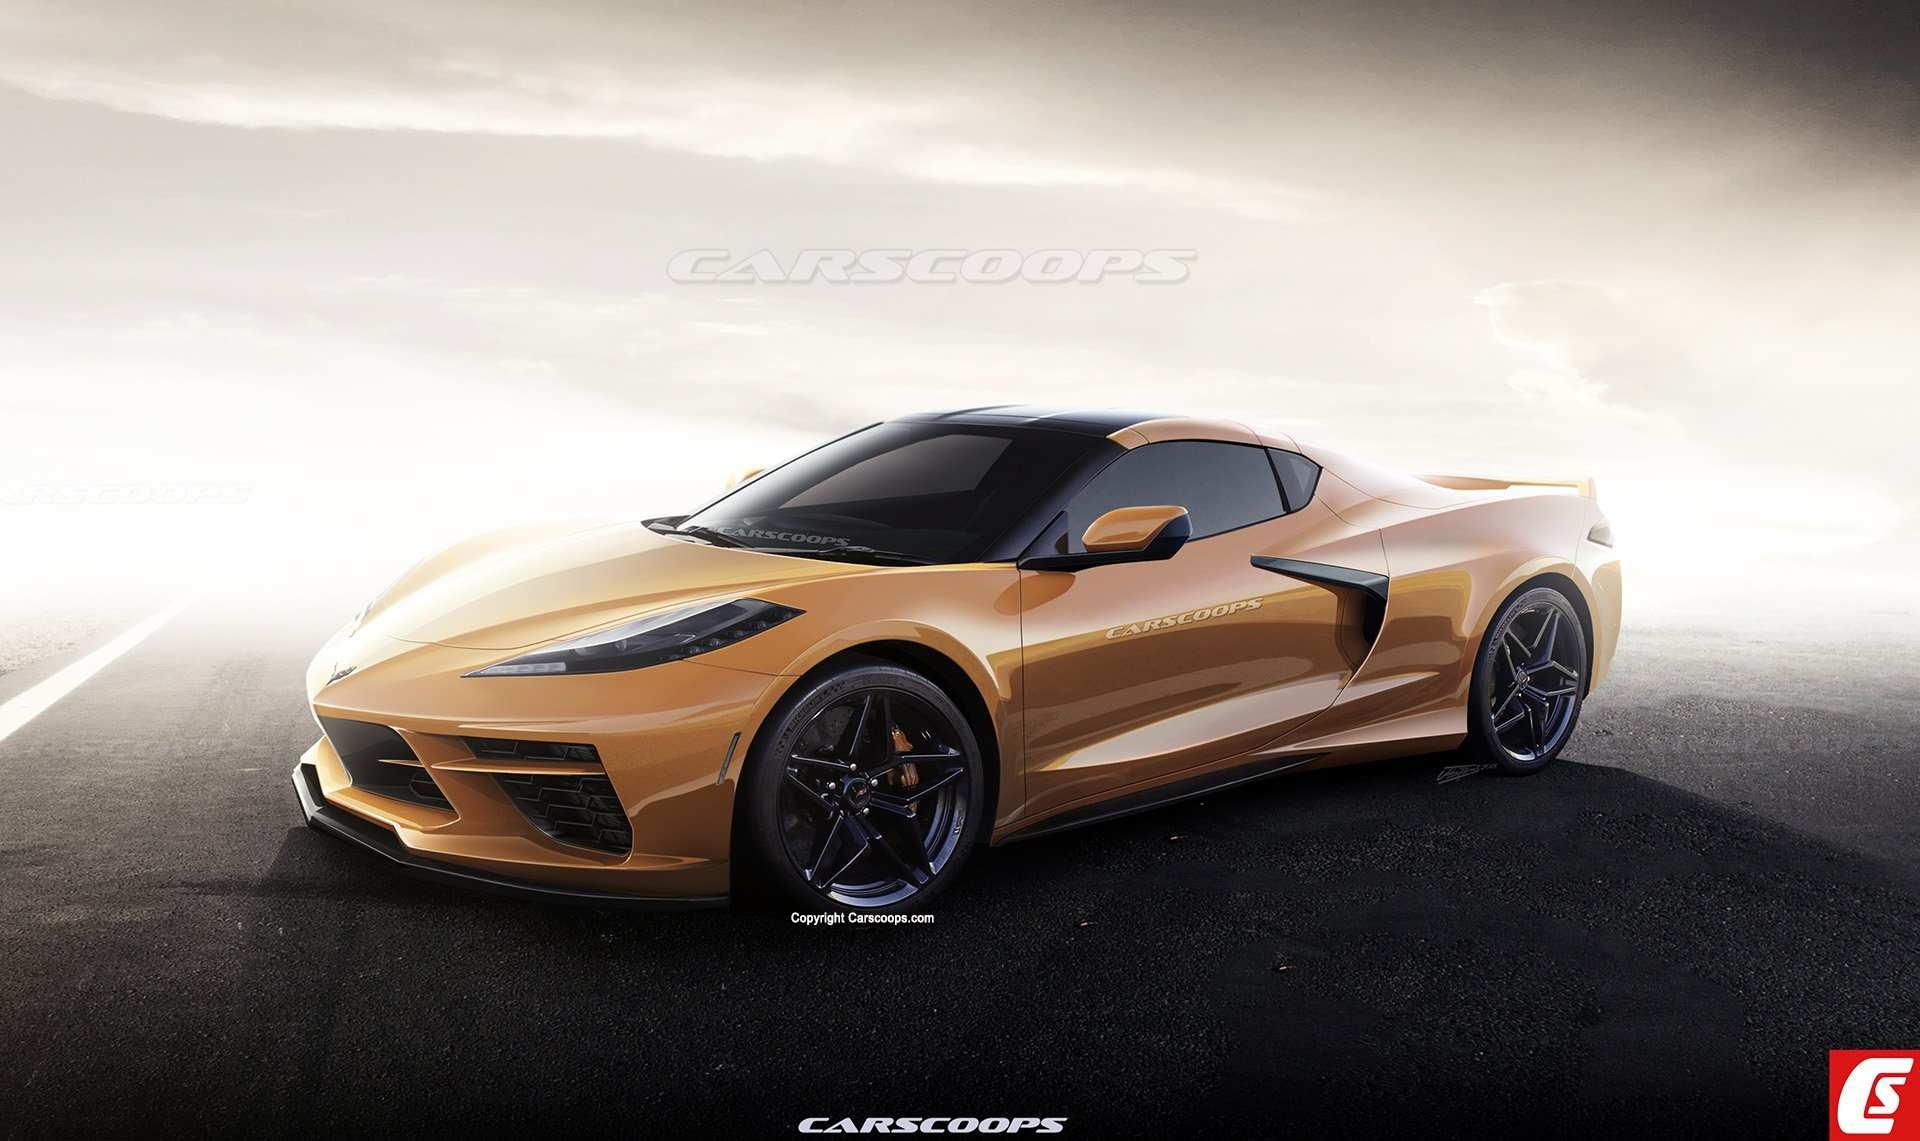 77 A 2020 Corvette Stingray Exterior